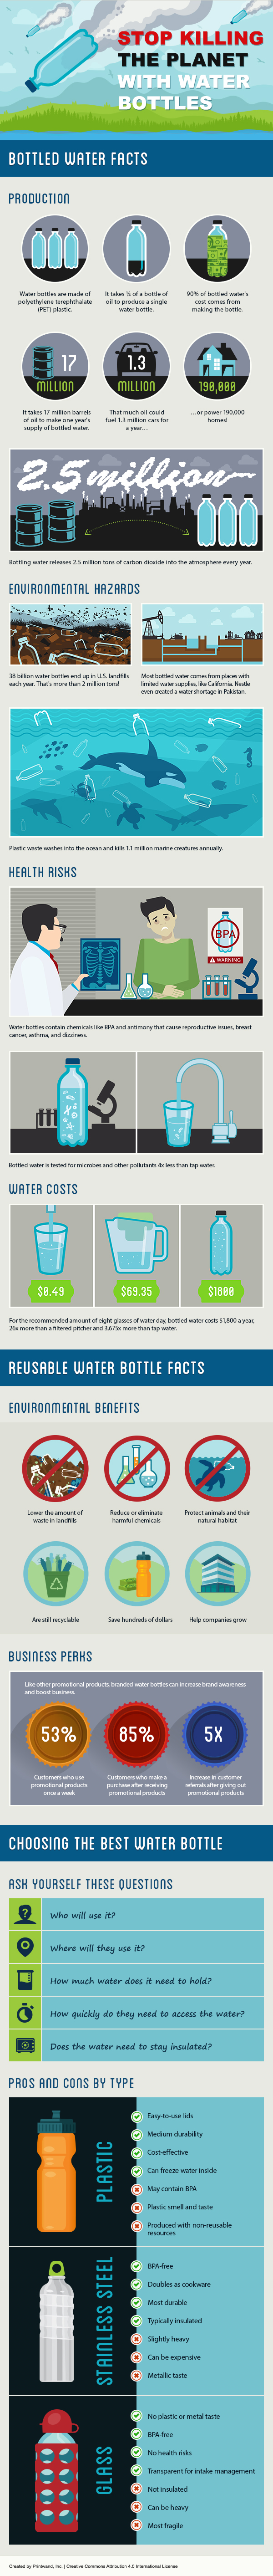 The Negative Environmental Impact of Bottled Water